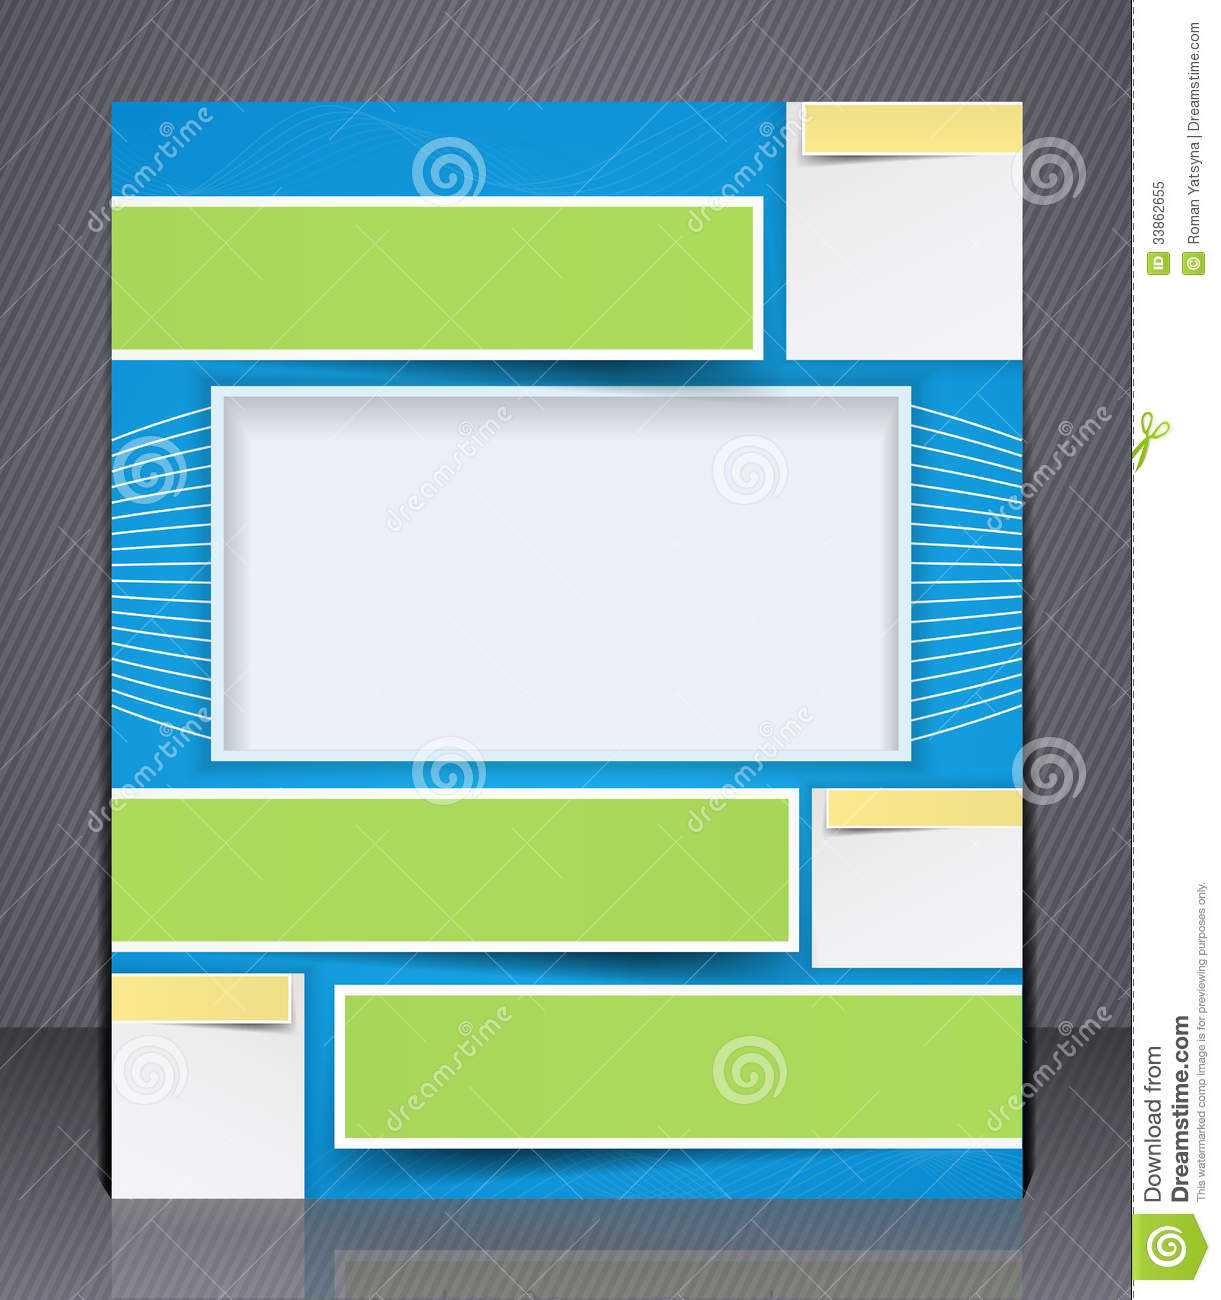 Layout business brochure template or a magazine stock for Magazine layout templates free download